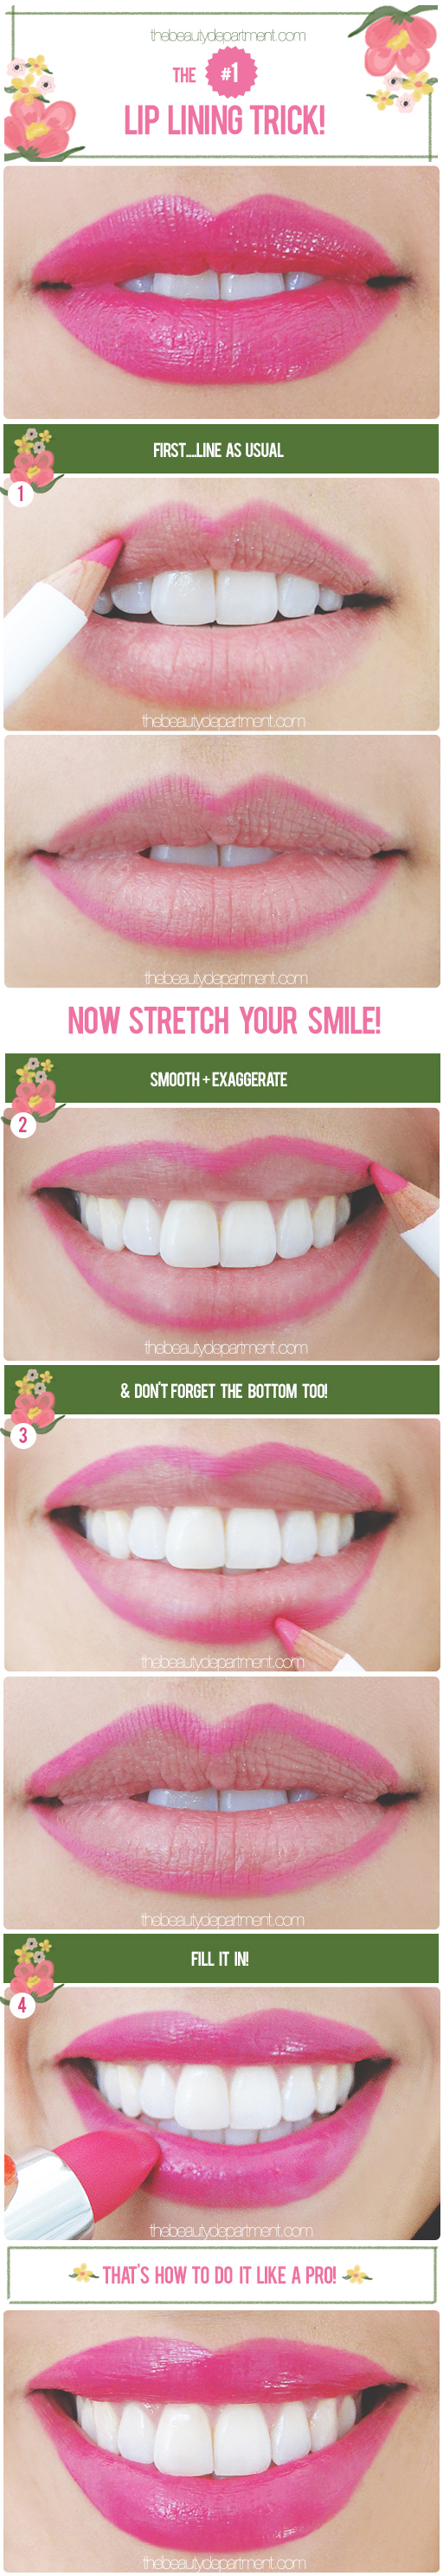 The Beauty Department: Your Daily Dose of Pretty. - QUICK LIP TIP